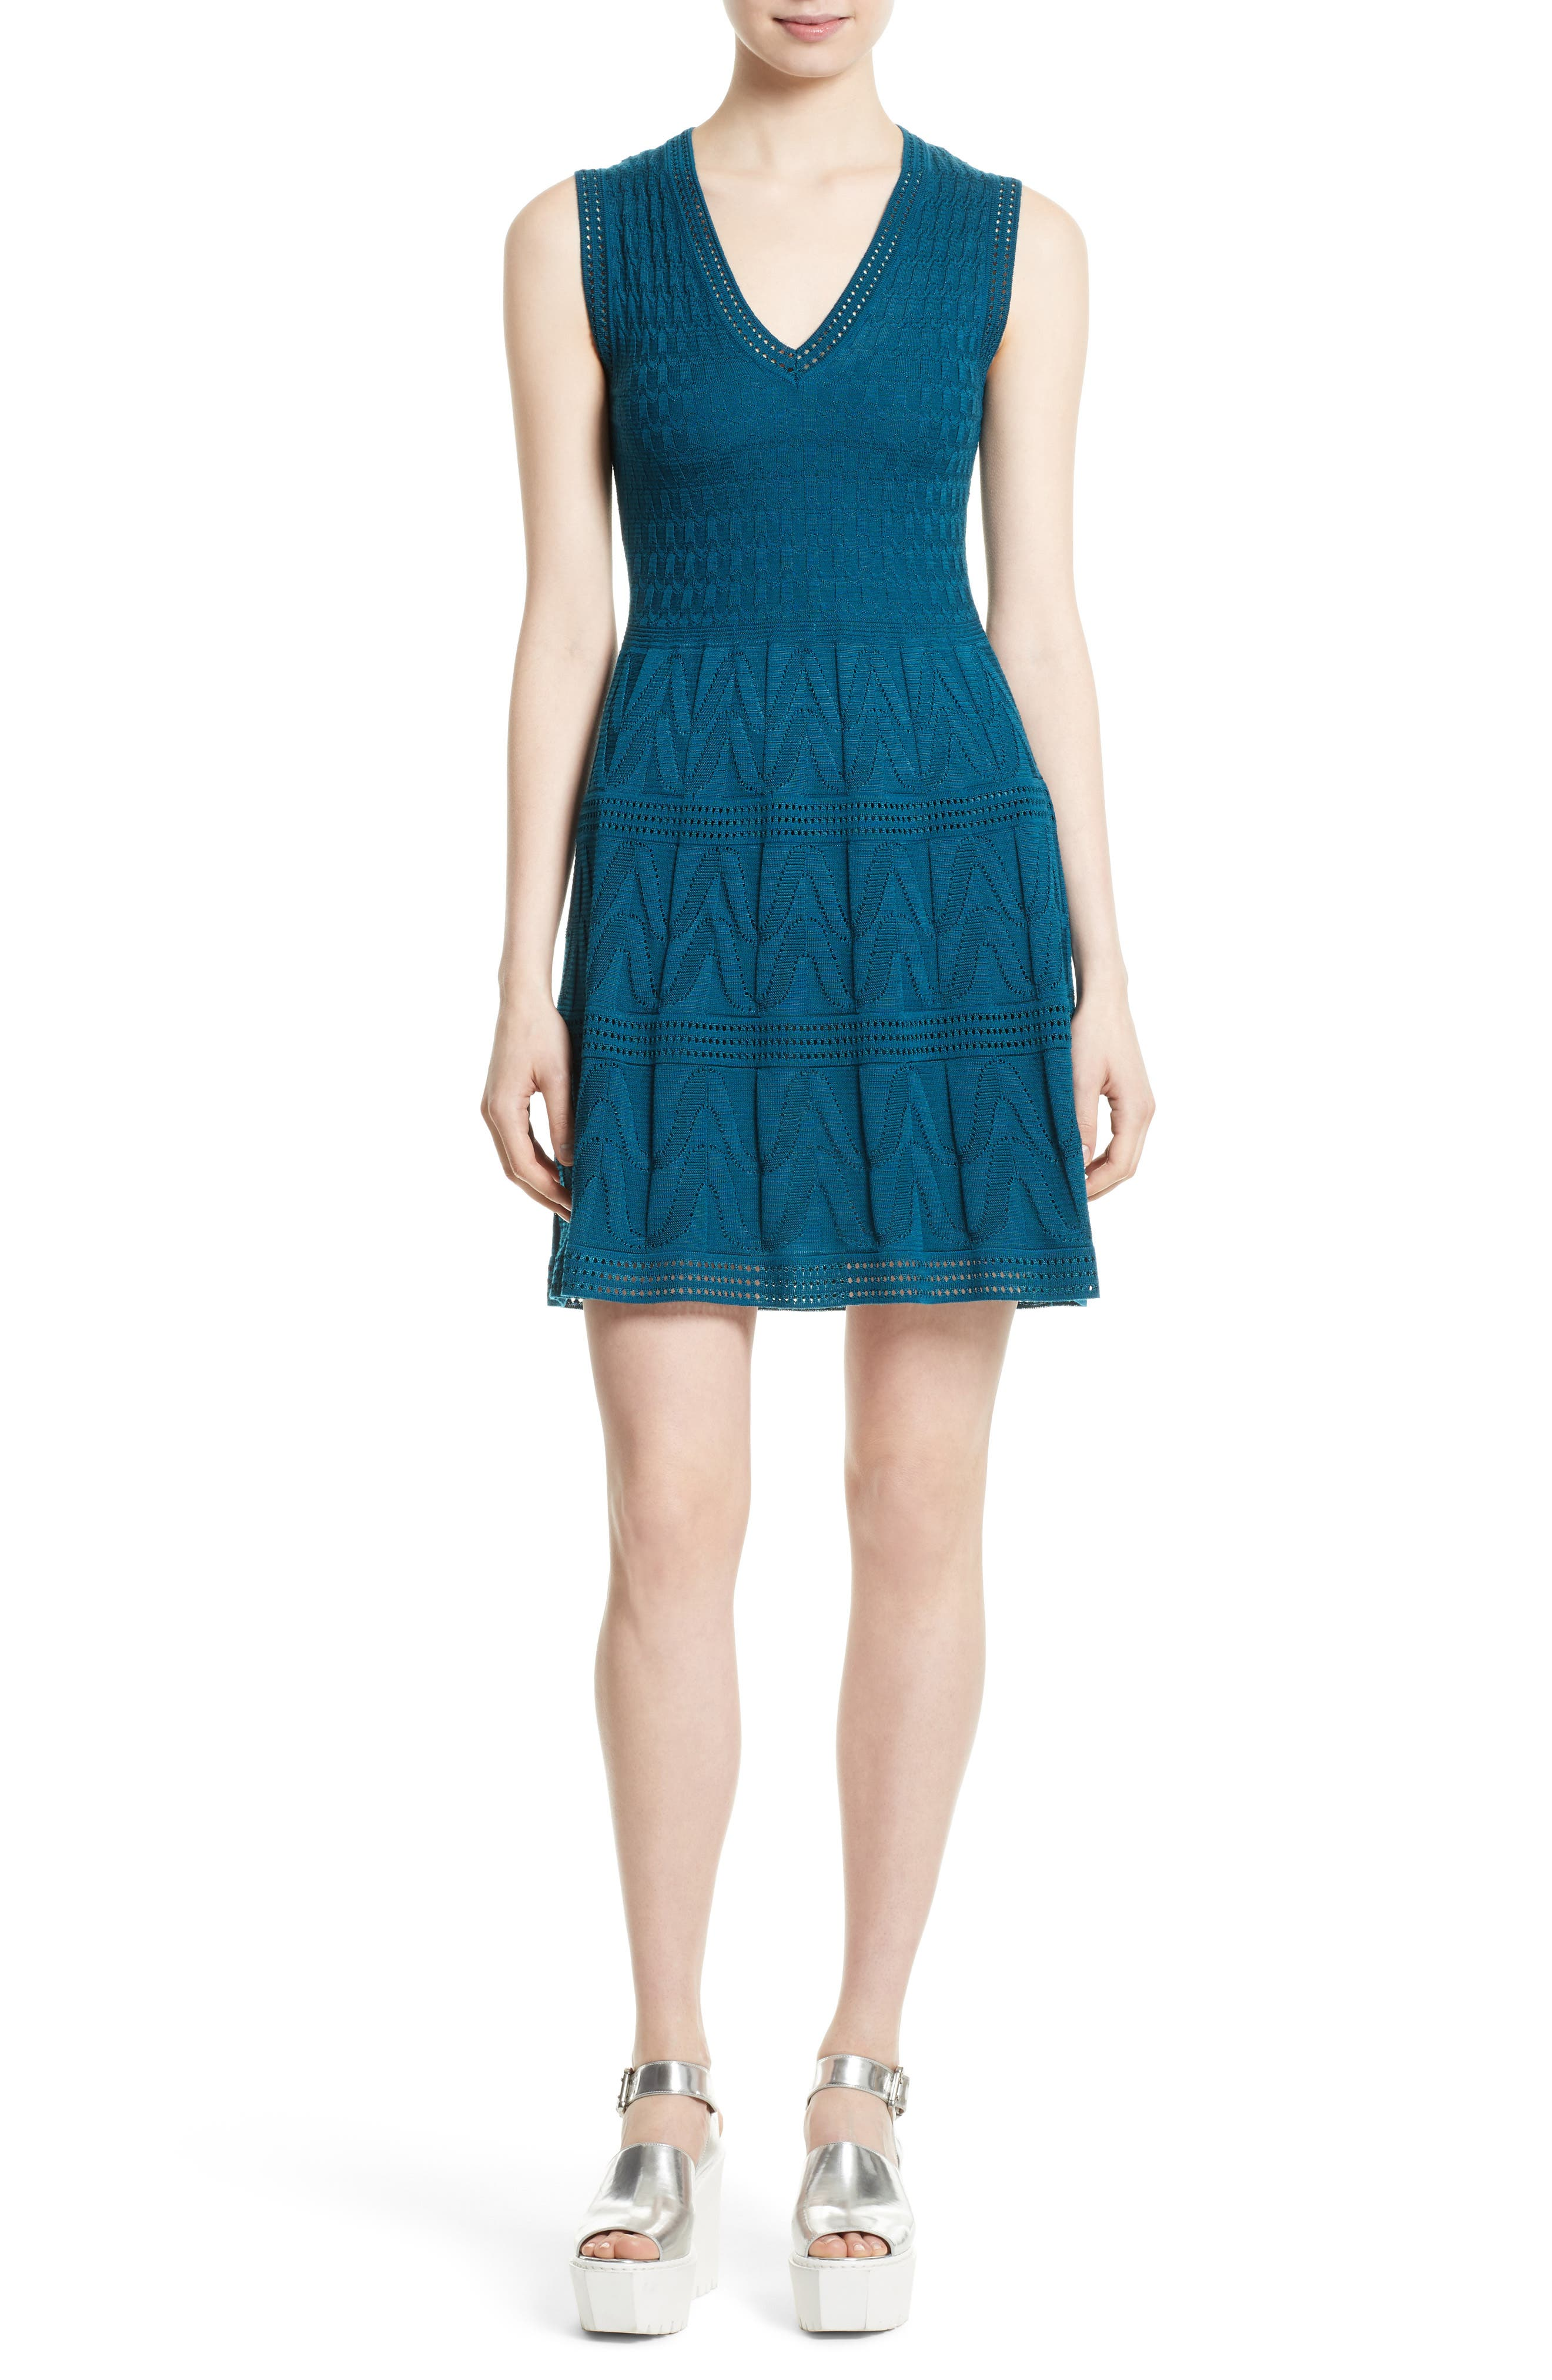 M Missoni Knit Fit & Flare Dress